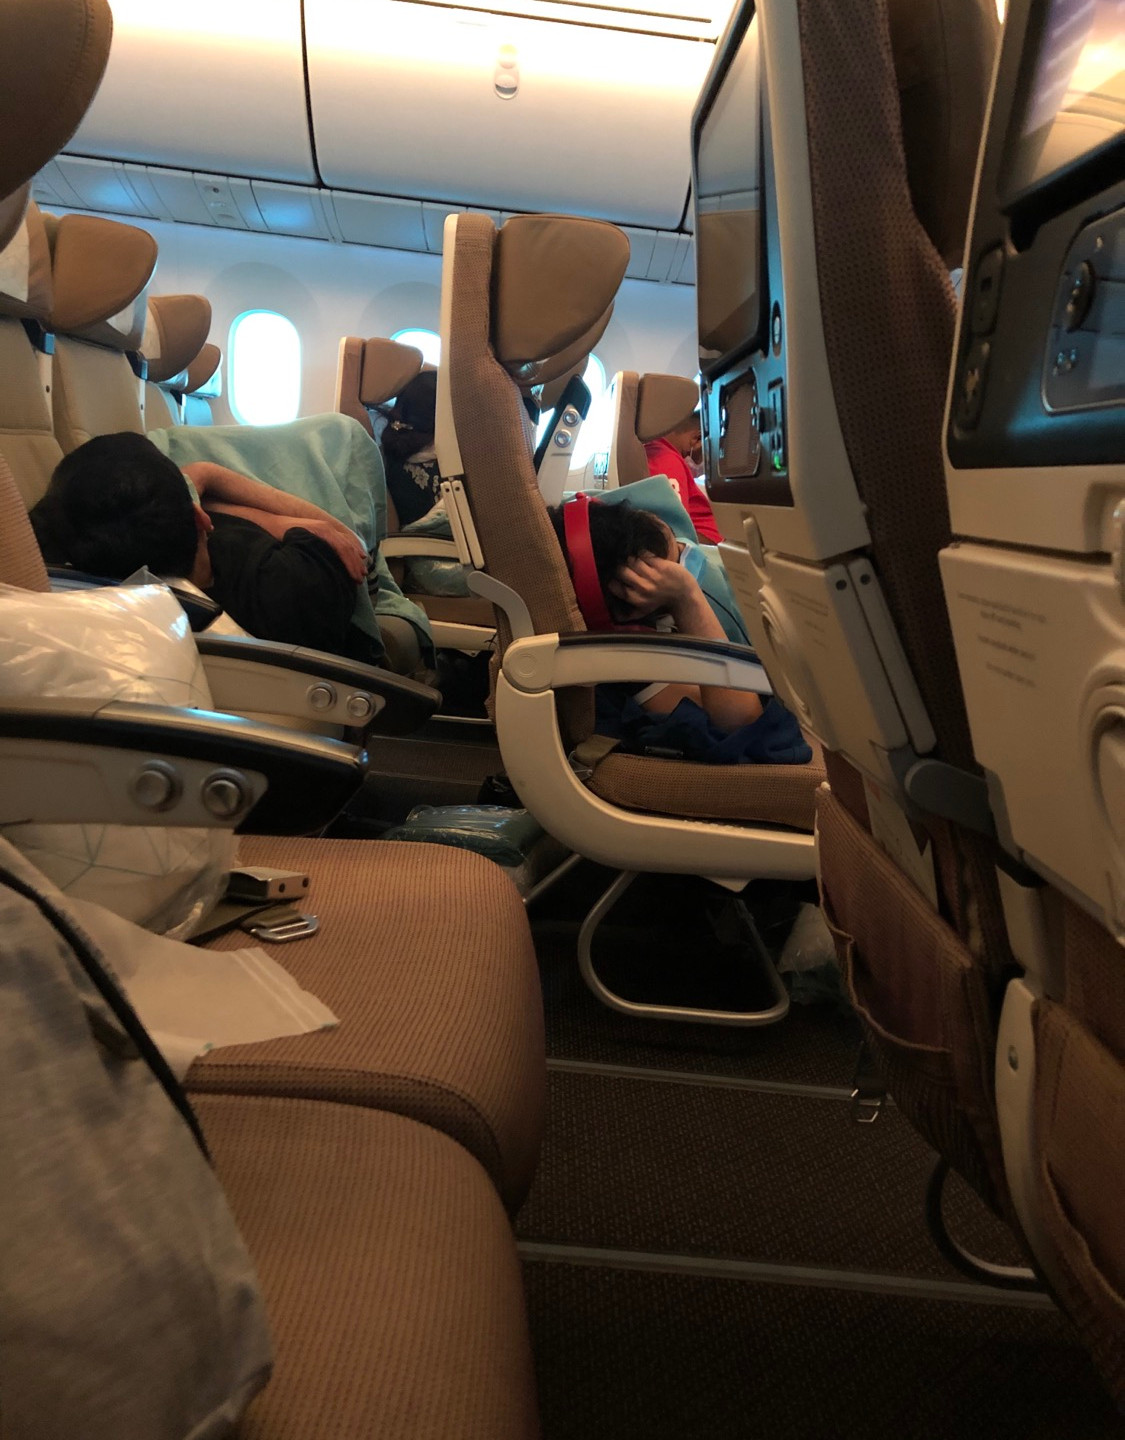 Etihad Airways Flight 131